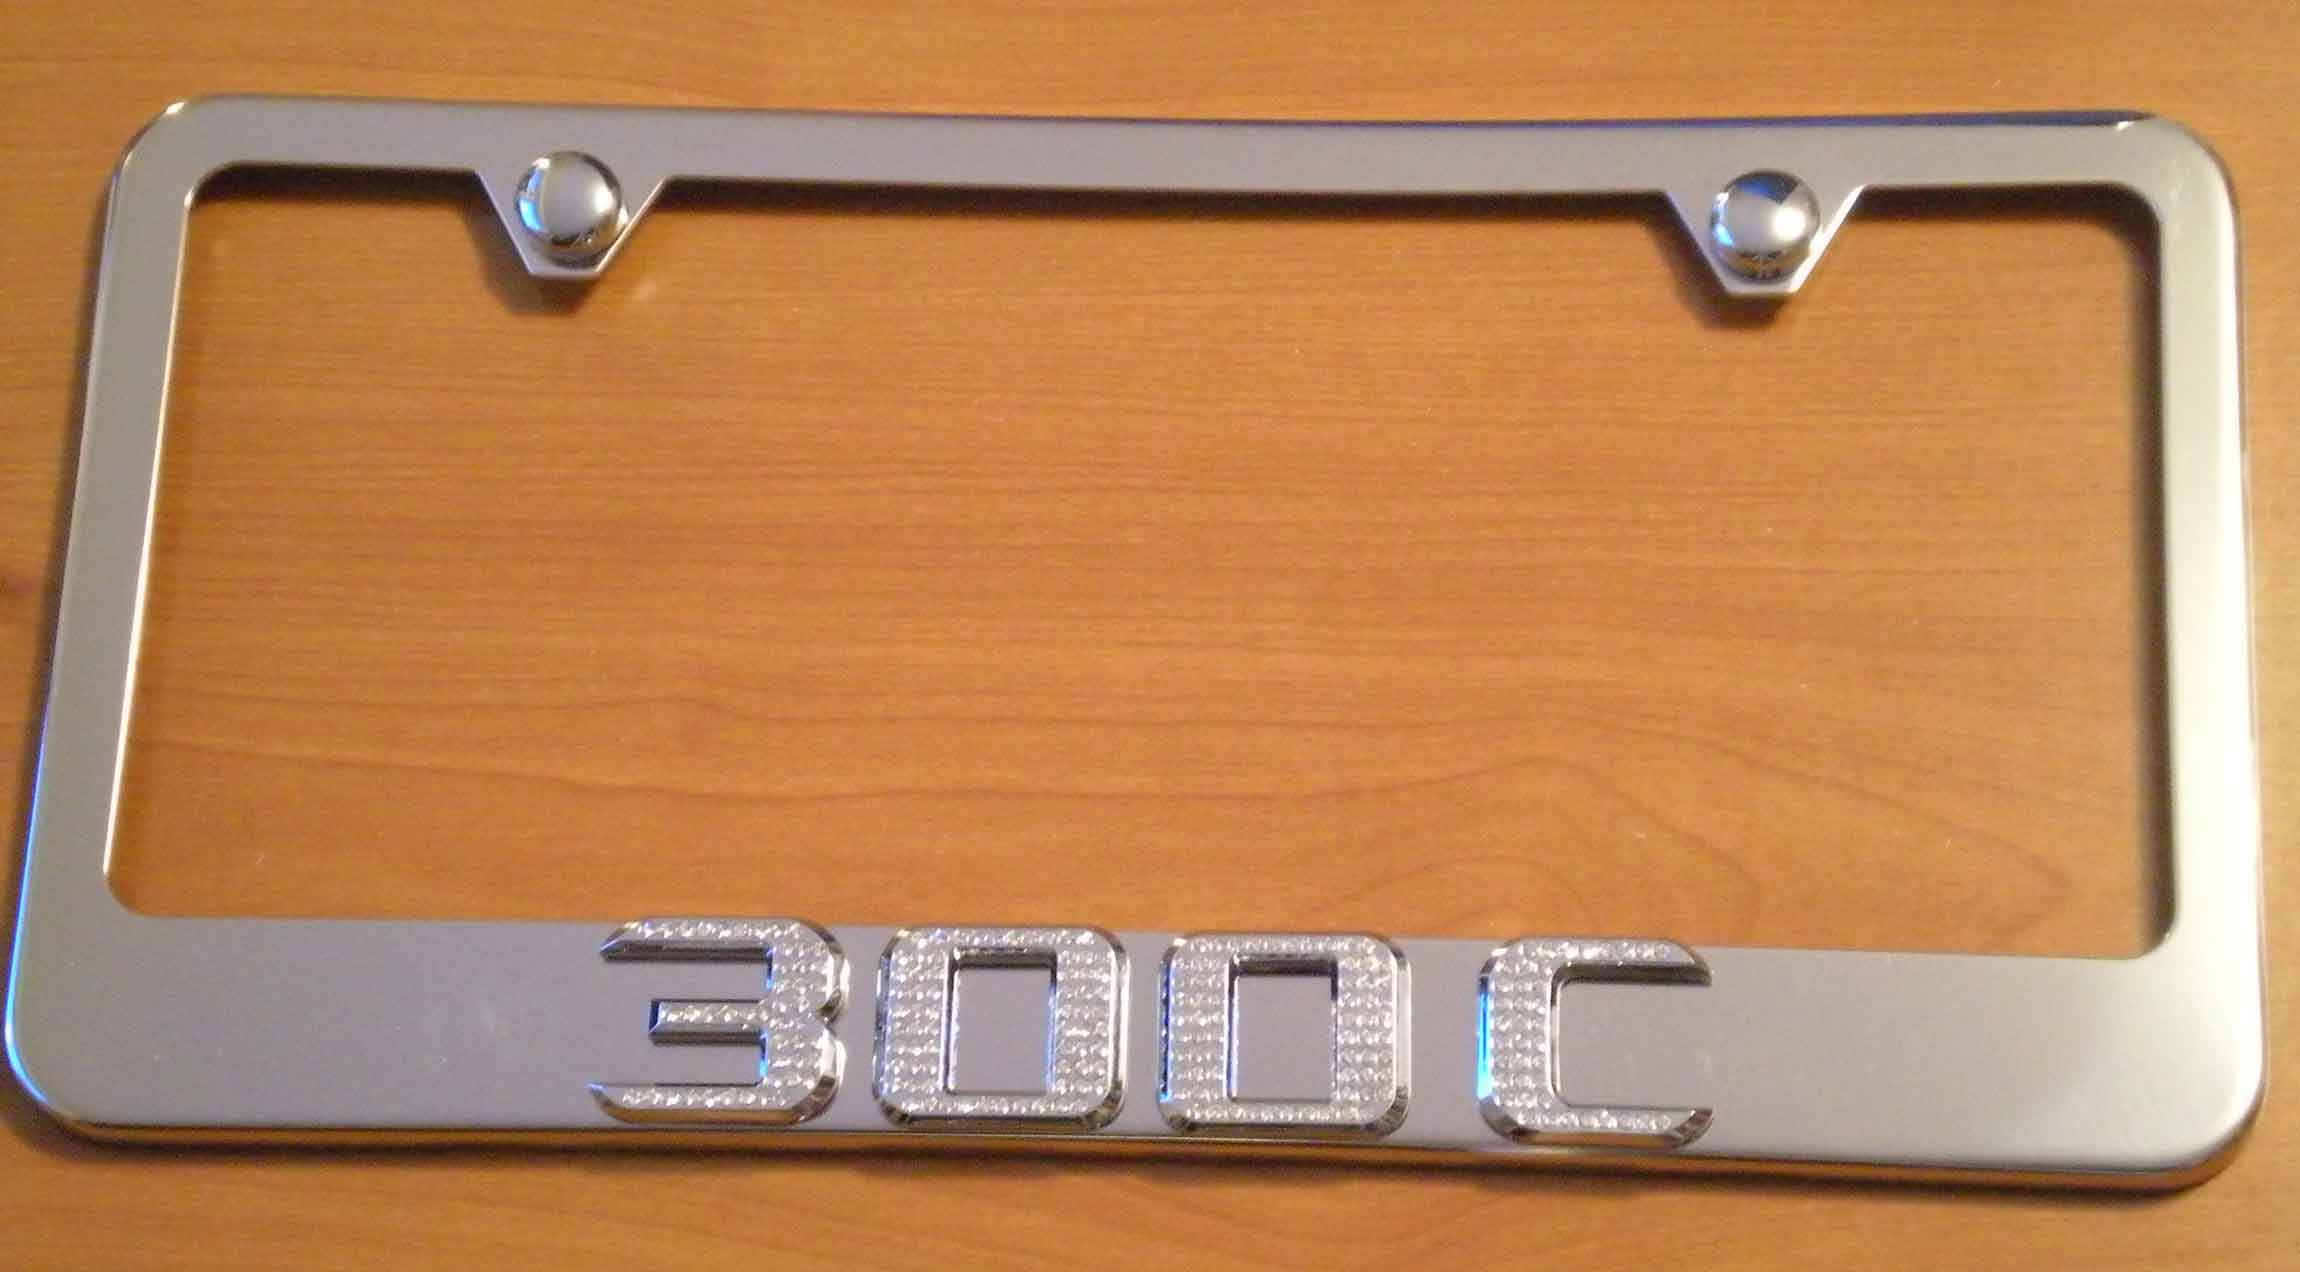 Chrysler 300c license plate holders